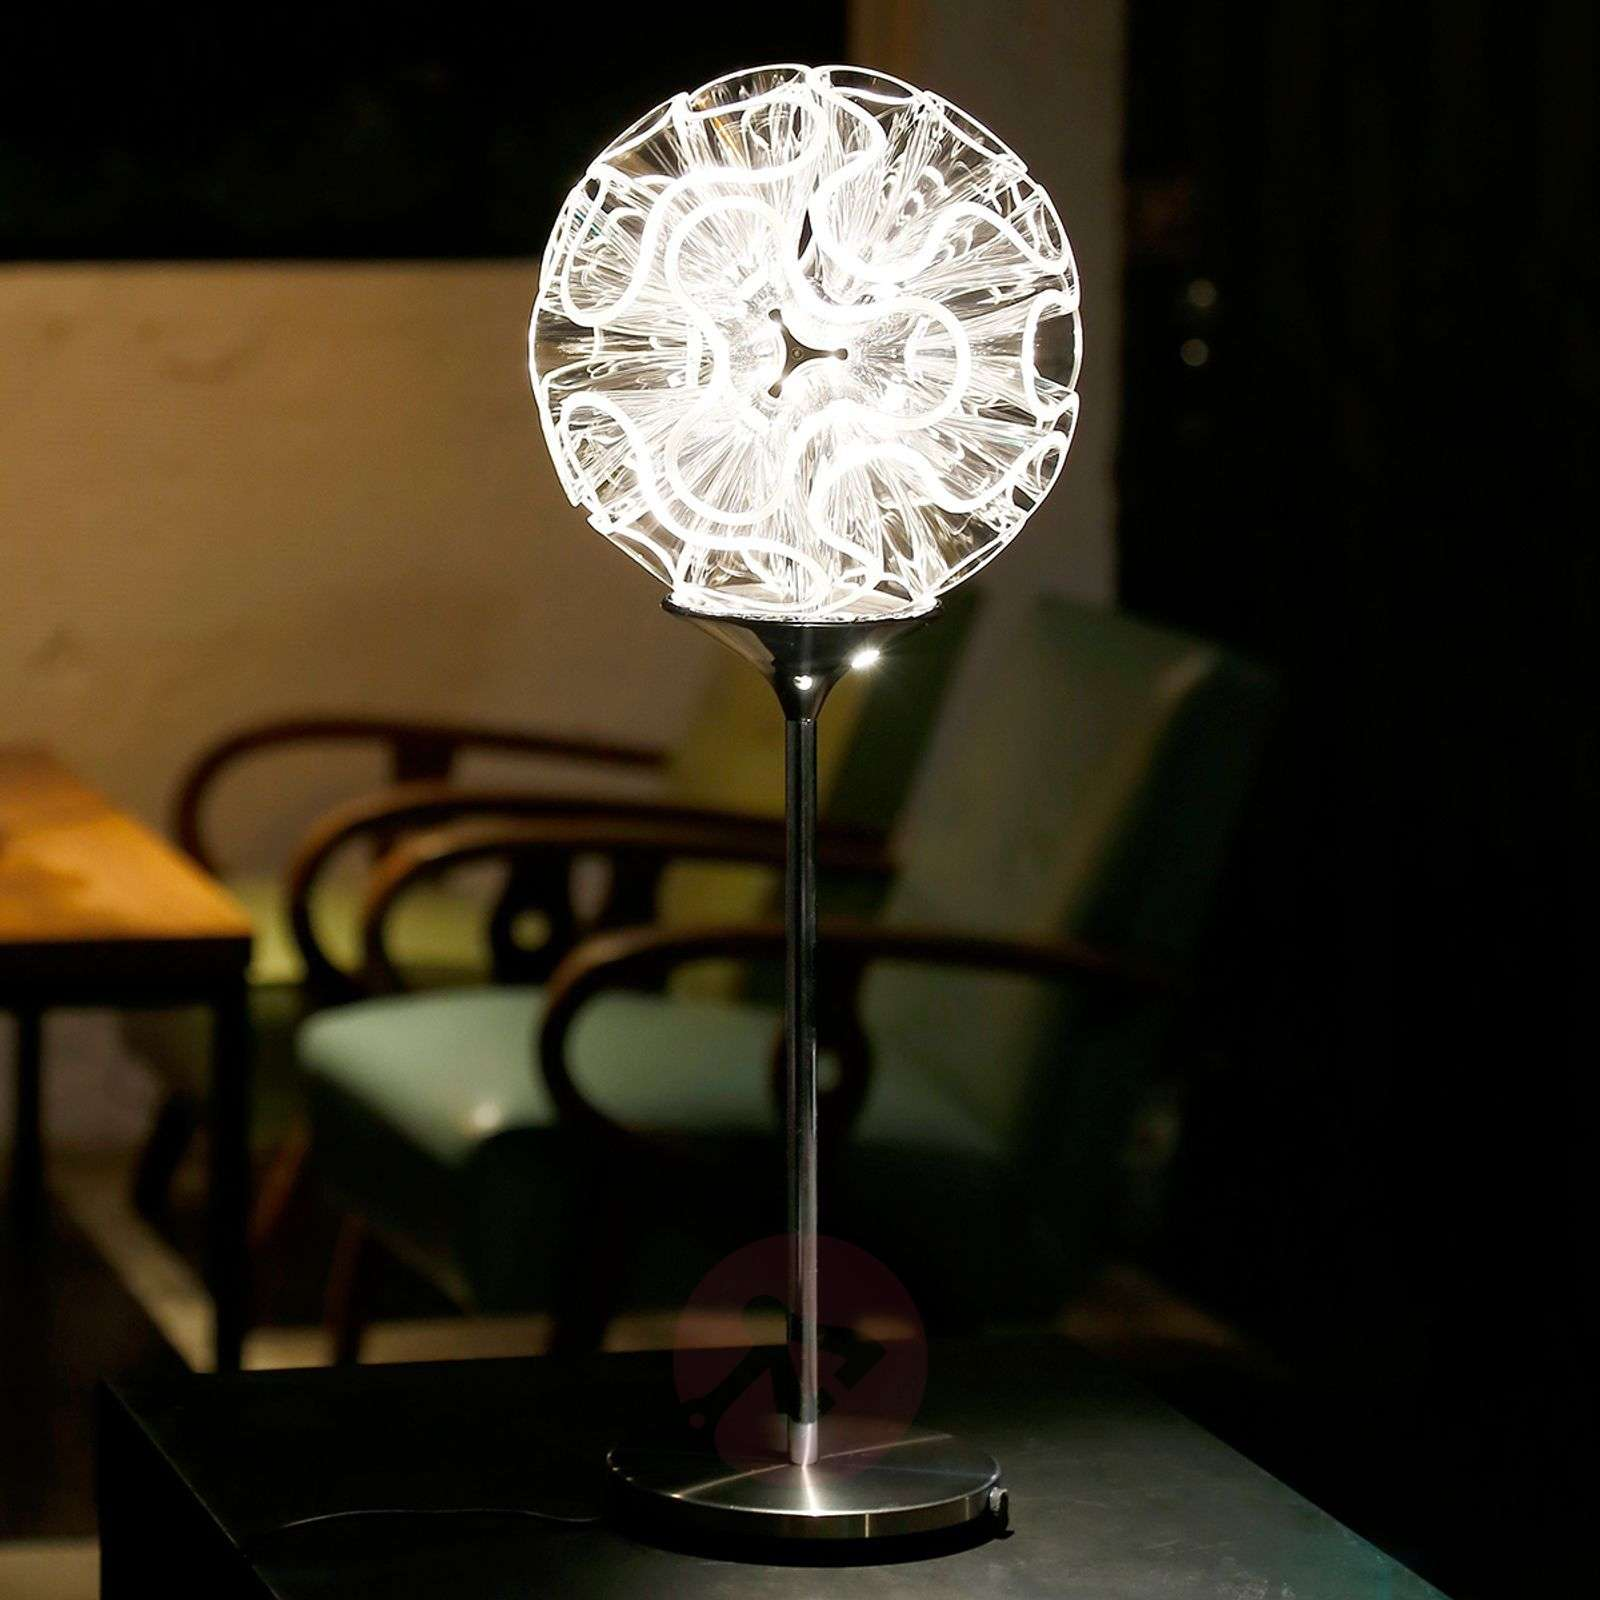 Coral designer table lamp with LED-7751013X-01